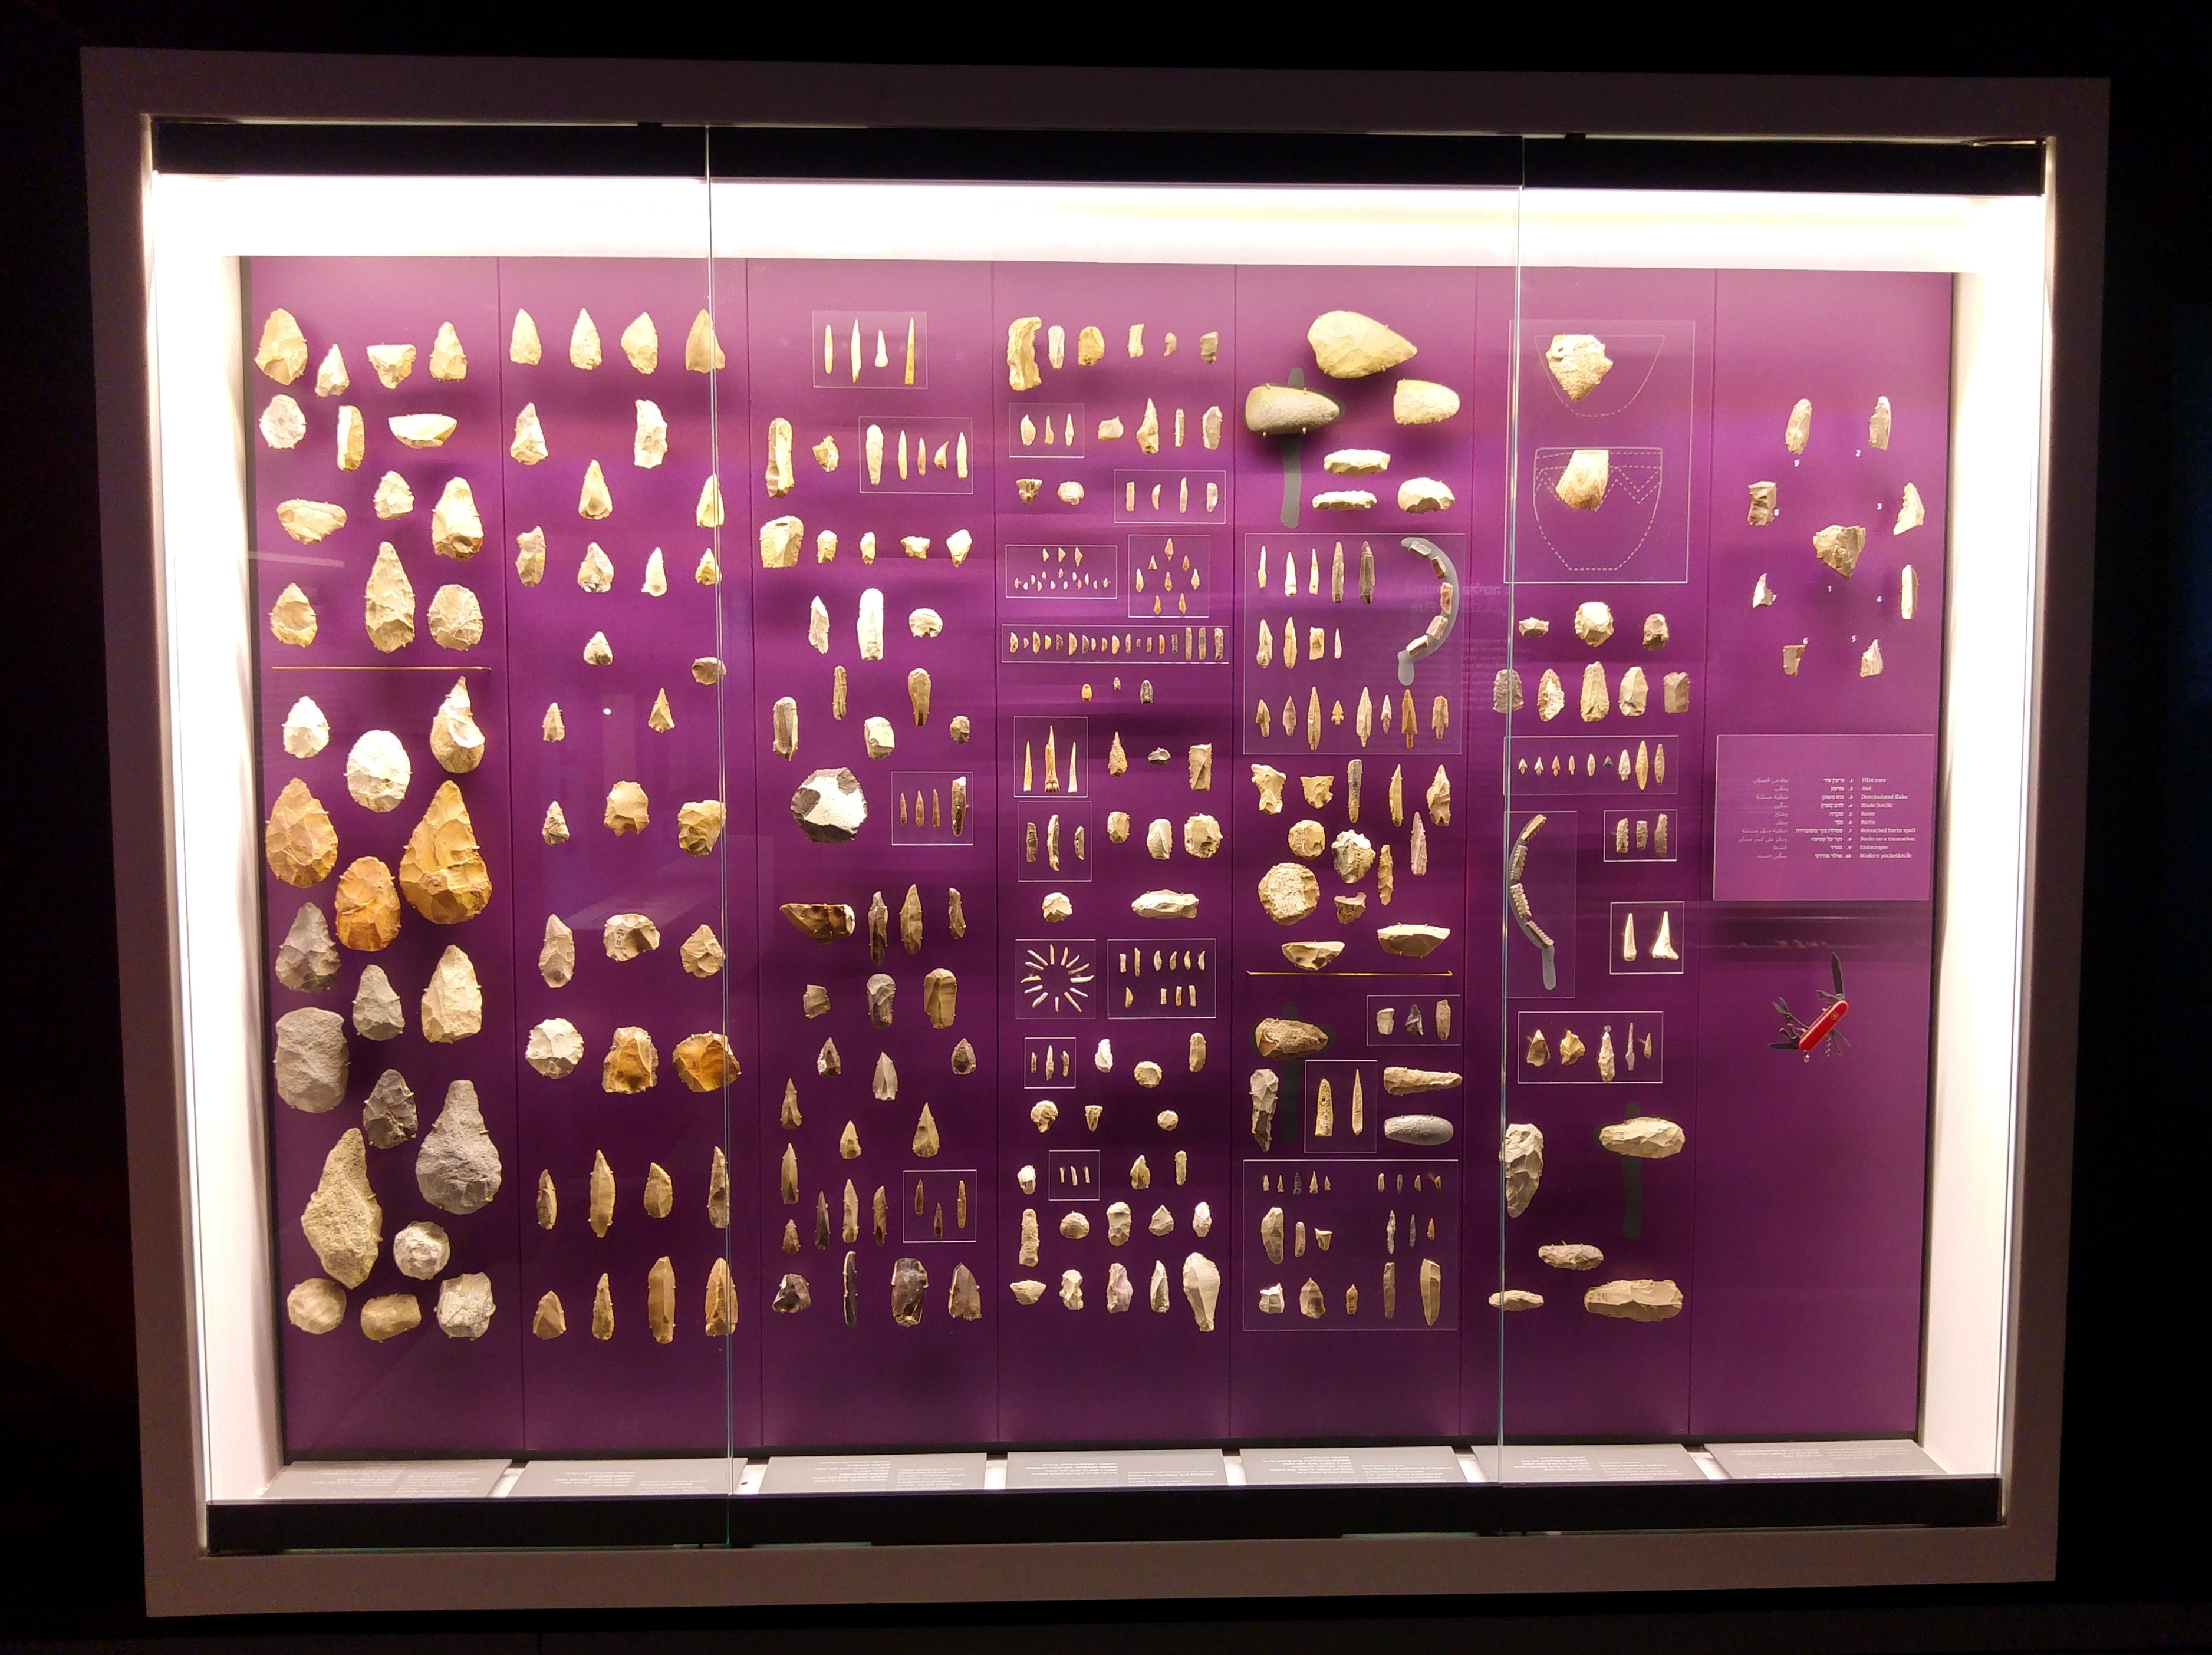 Tools of the early humans